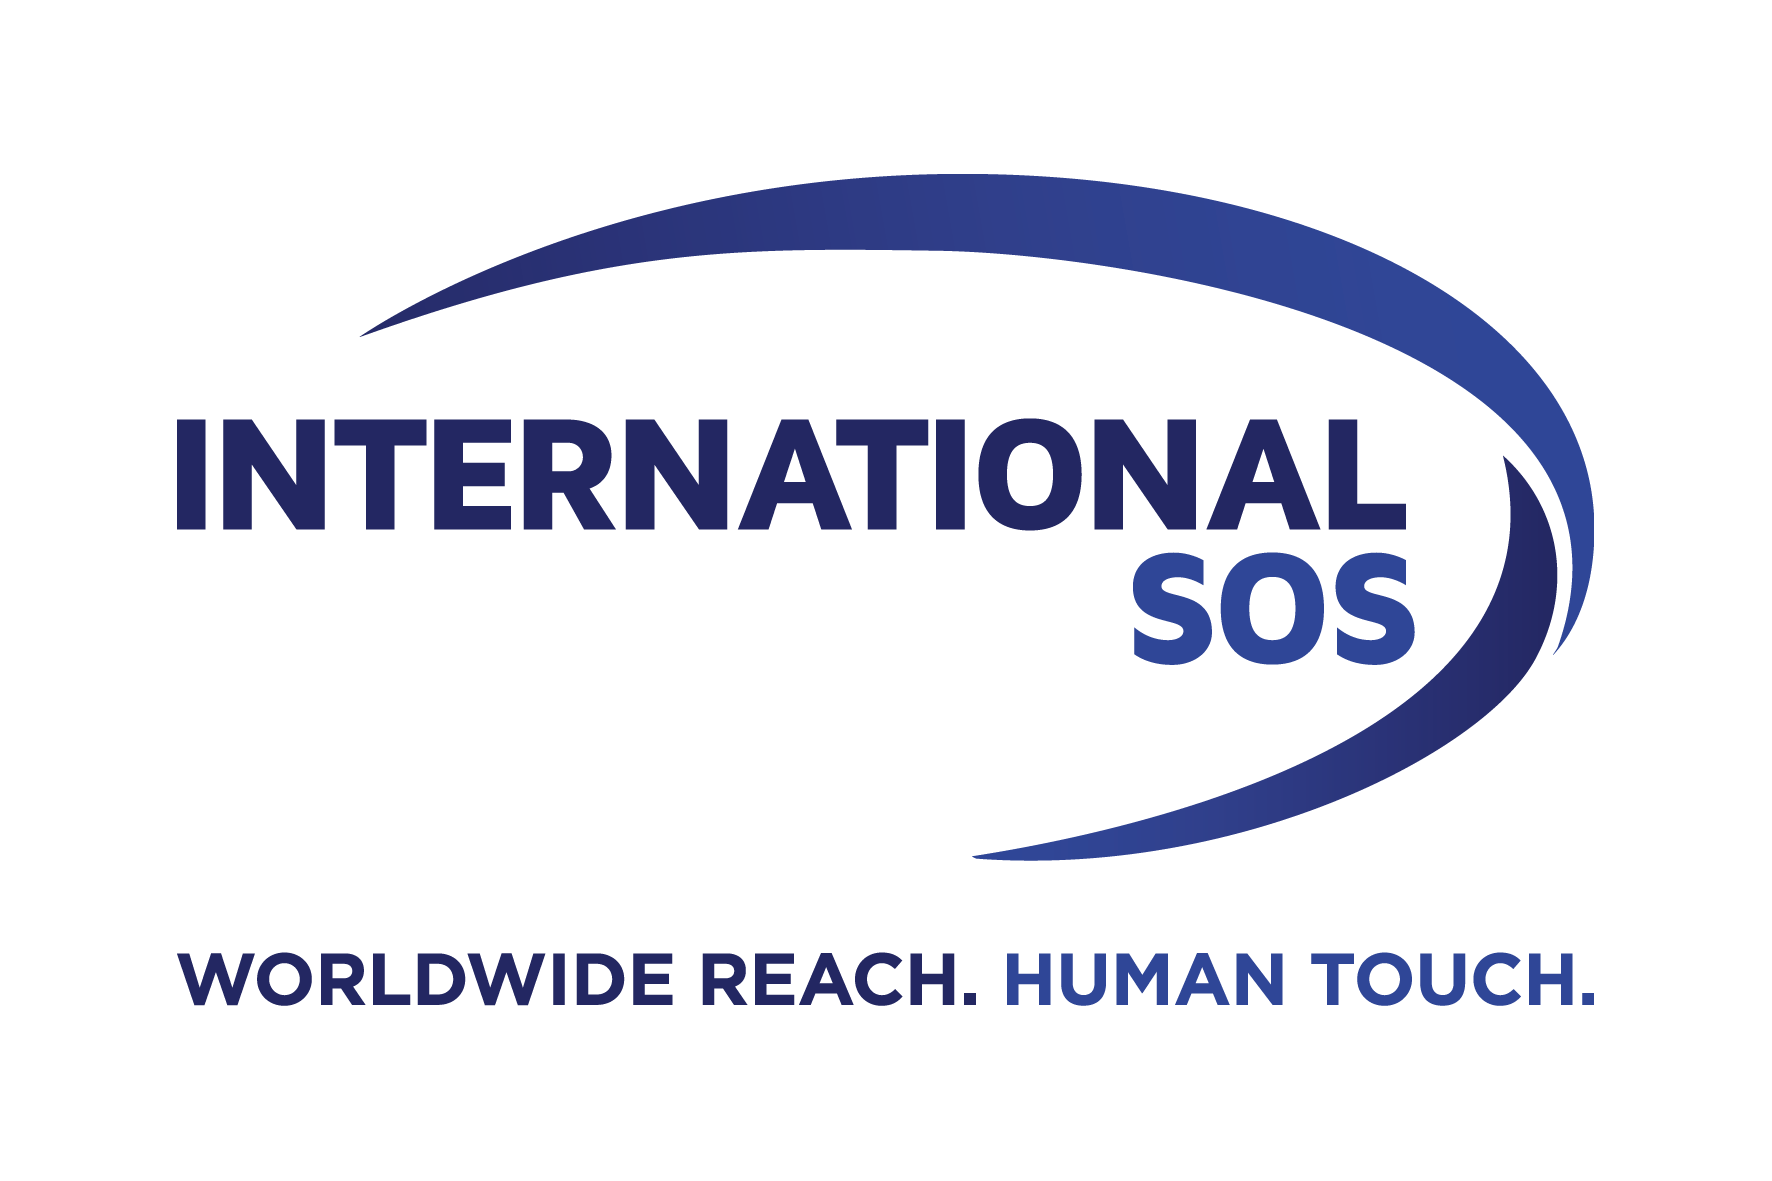 International SOS tagline